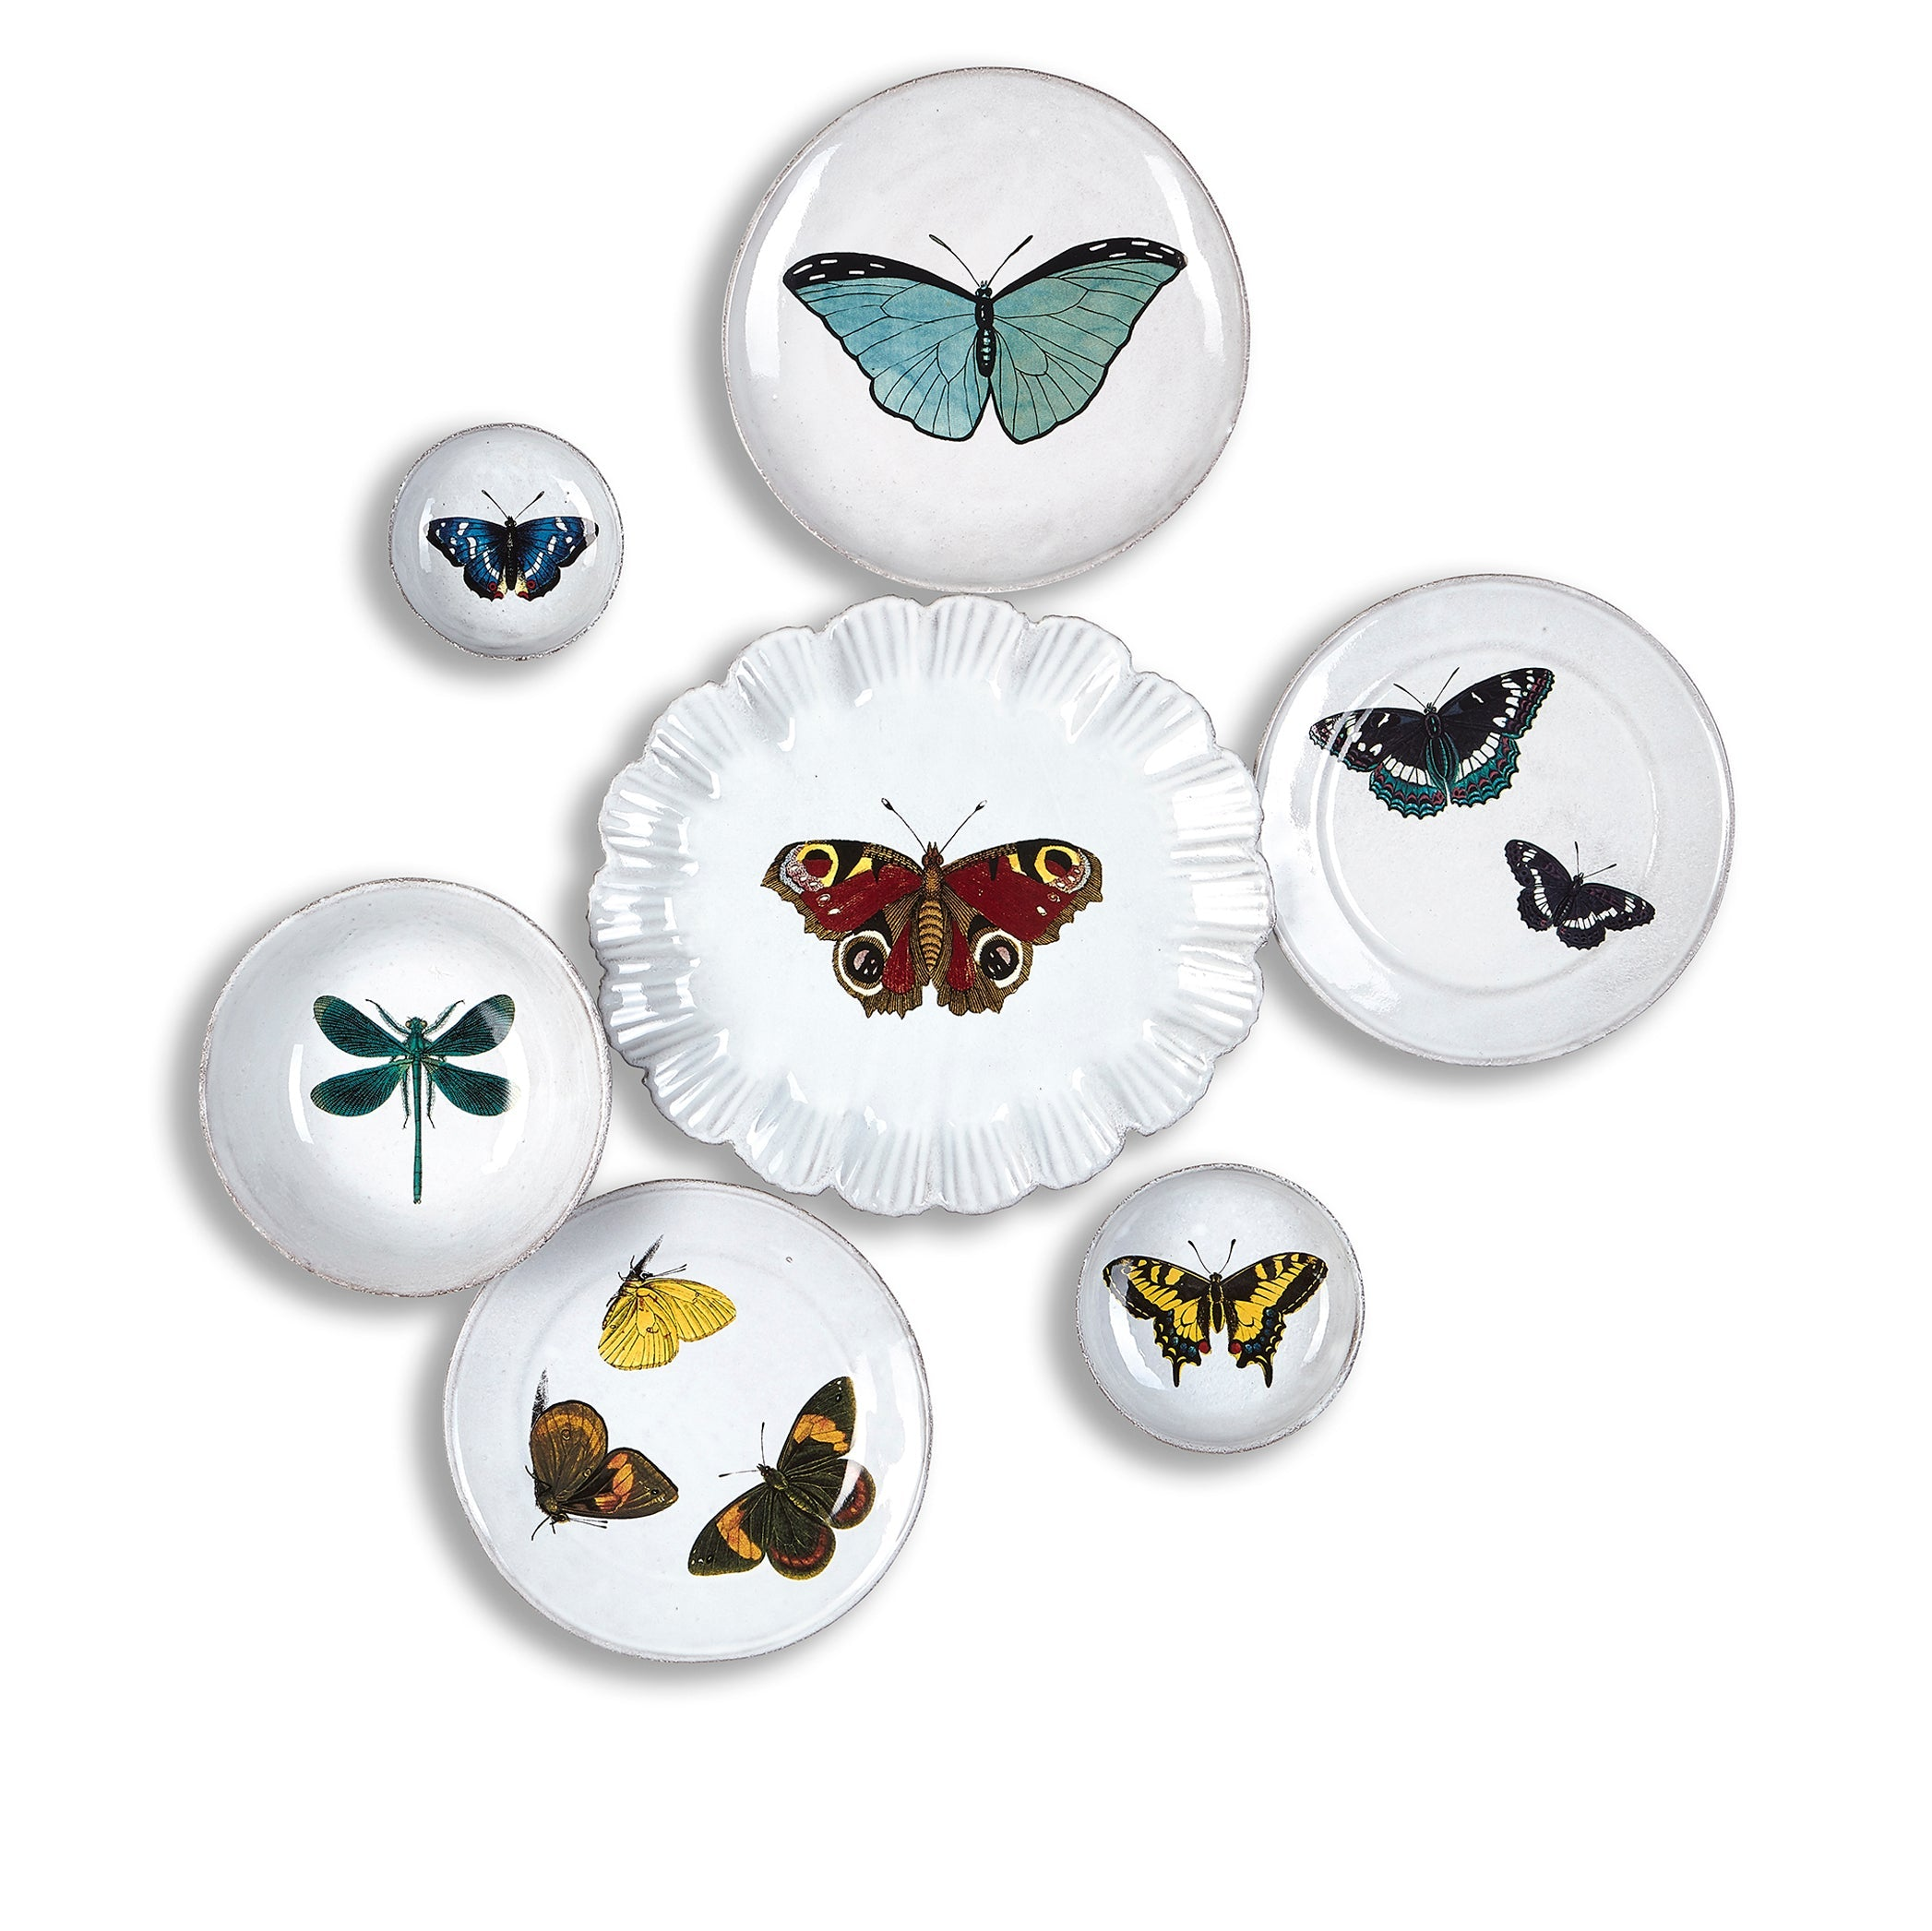 Yellow Butterfly Small Dish by Astier de Villatte